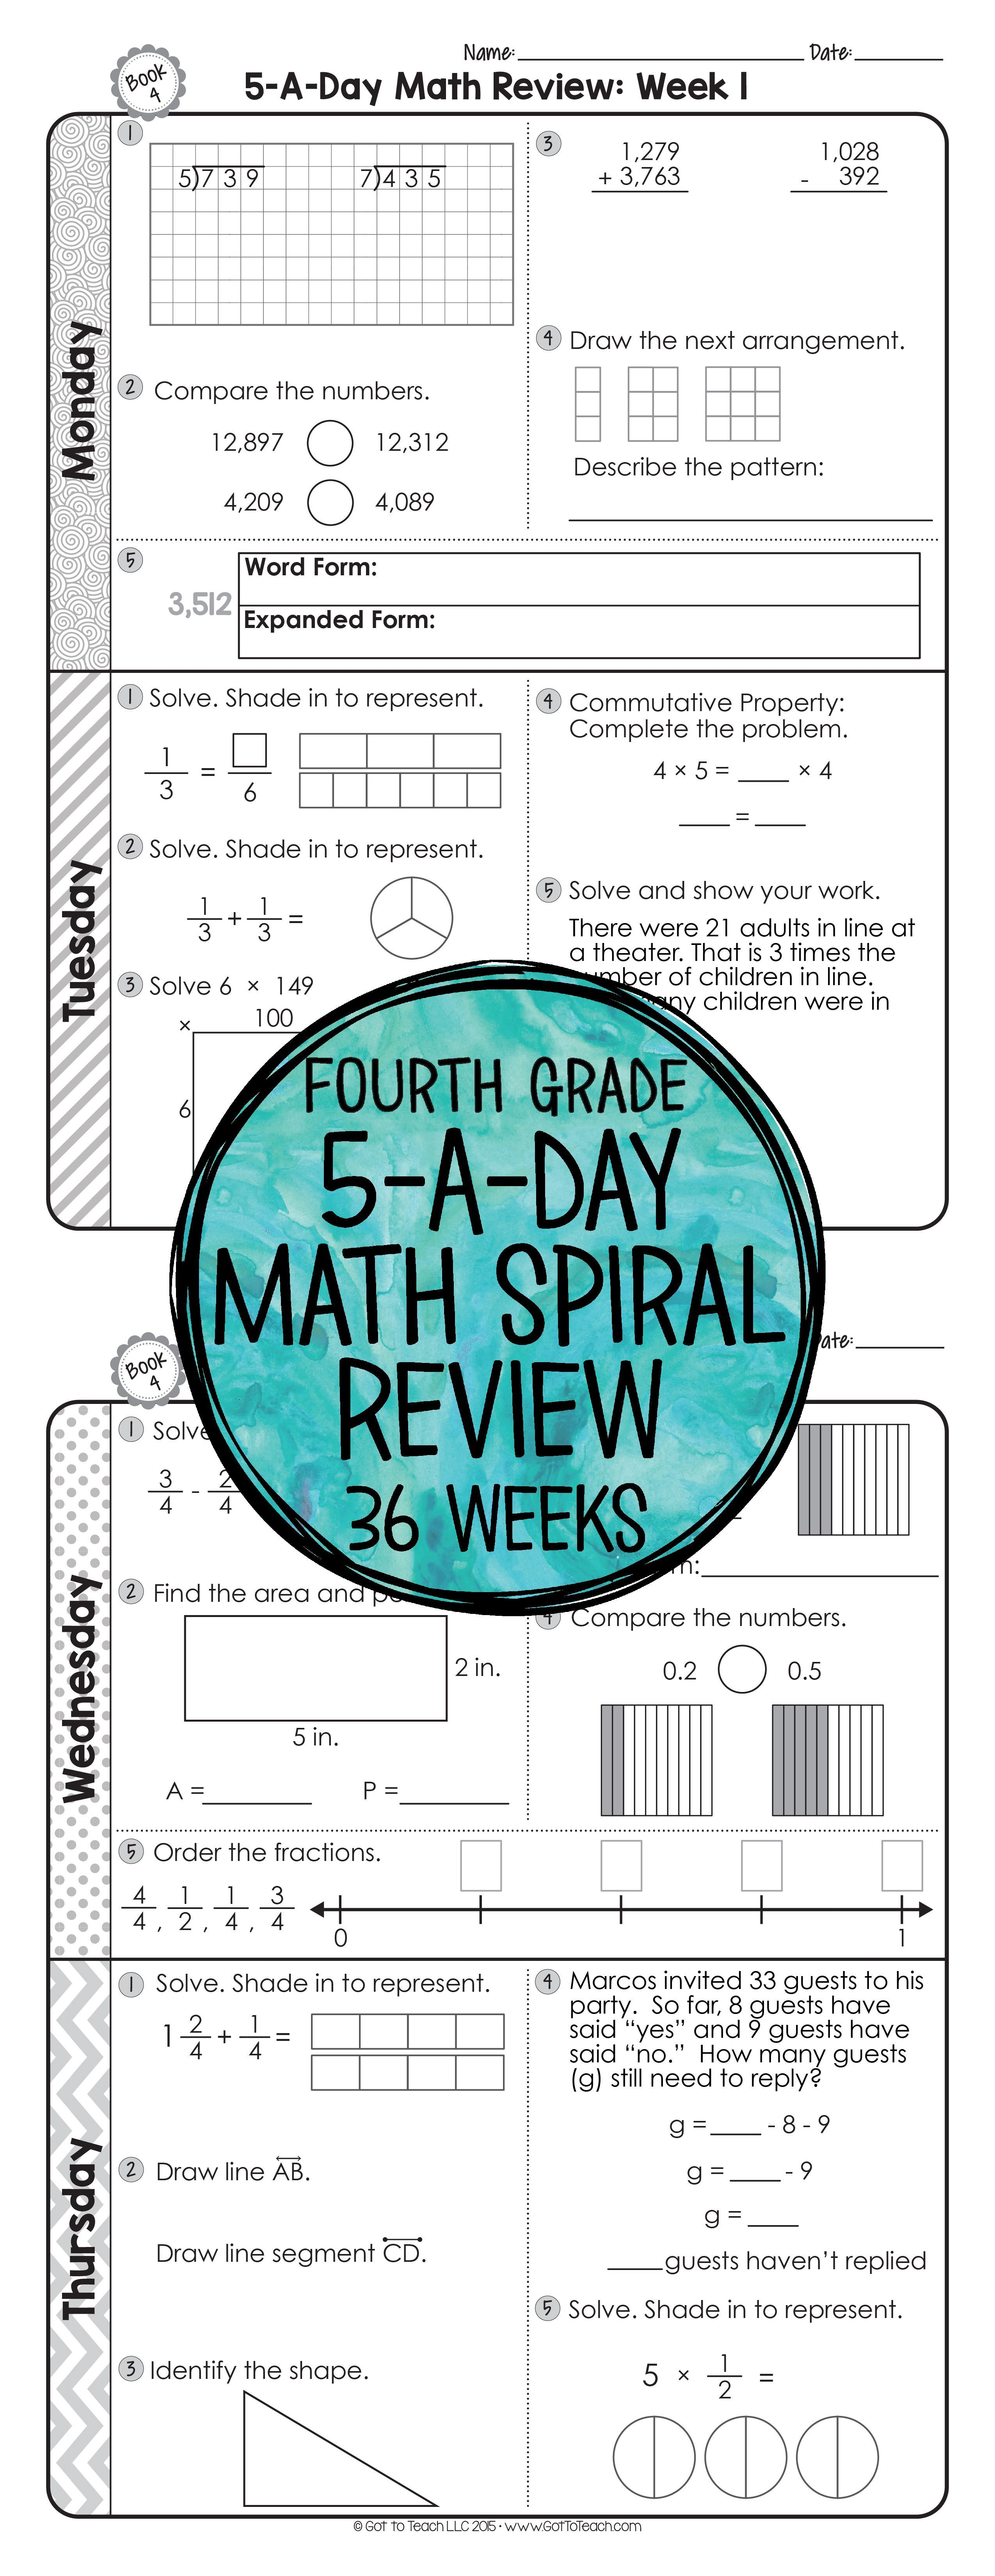 hight resolution of Spiral Math Worksheet   Printable Worksheets and Activities for Teachers